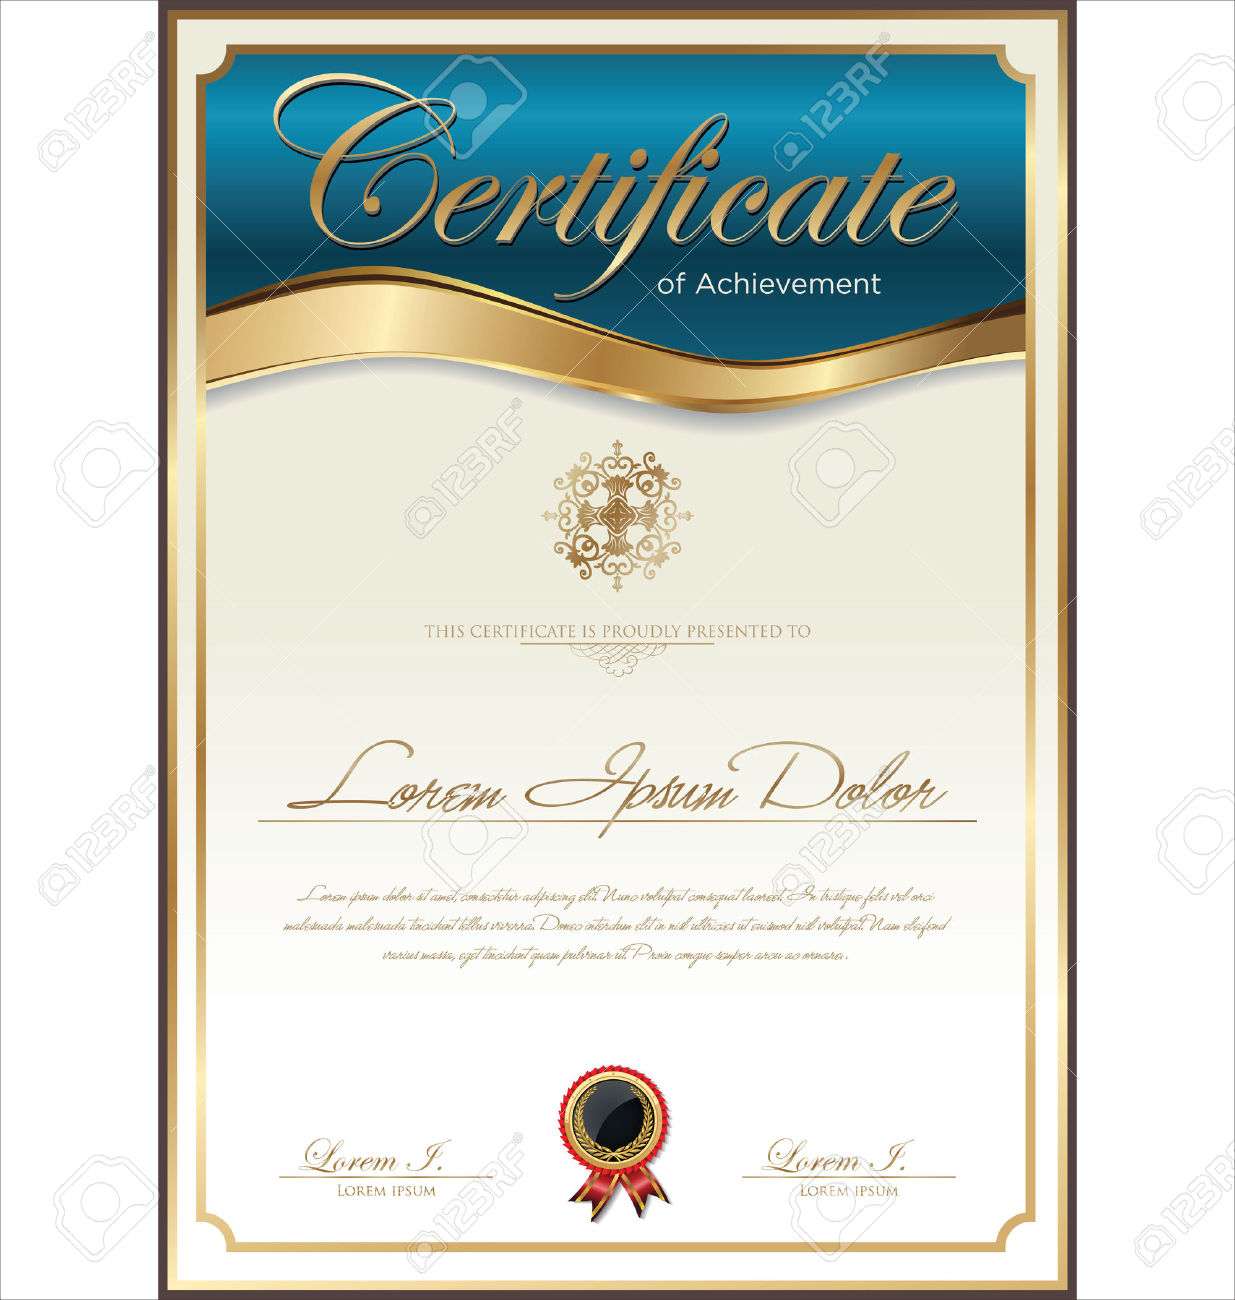 Certificate templates rich image and wallpaper for Free high school diploma templates